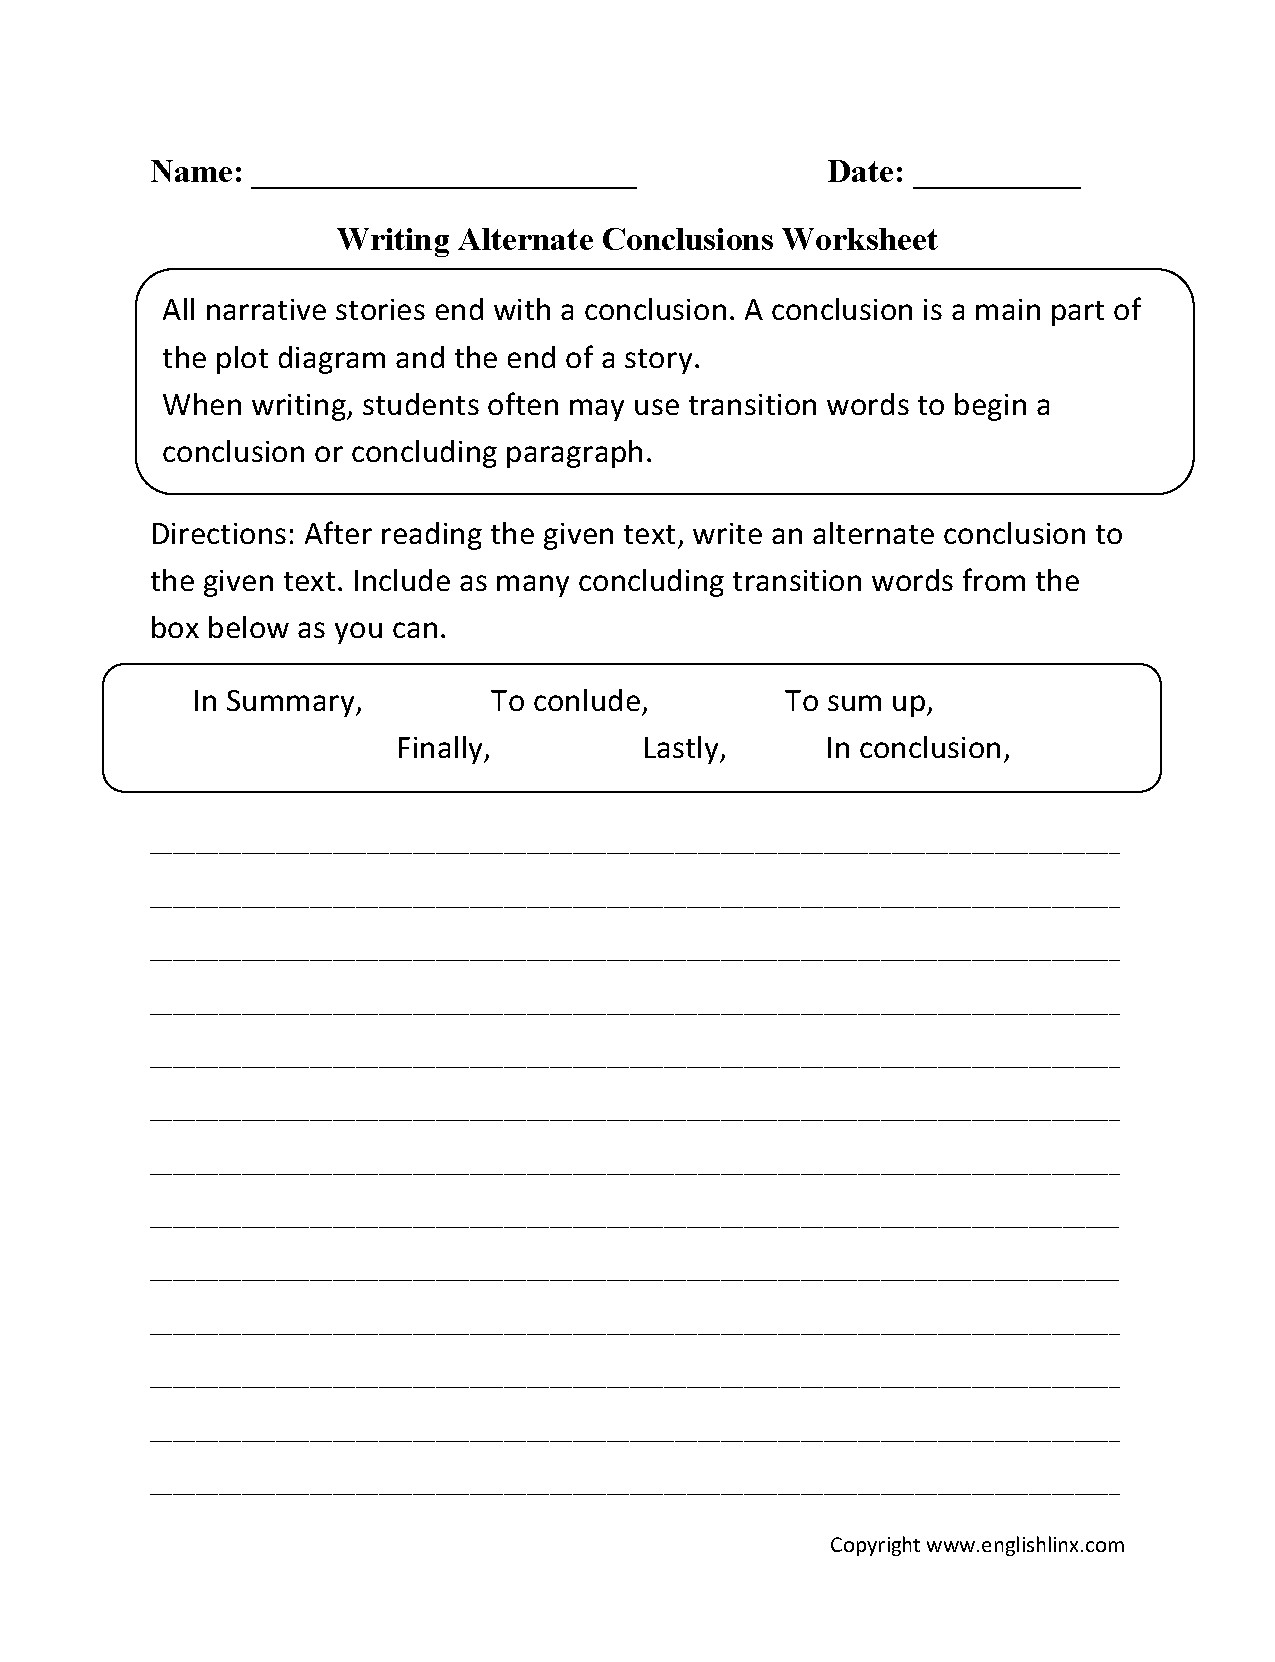 Writing Worksheets for 5th Grade 027 Englishlinx Writing Conclusions Worksheets Pertaining to